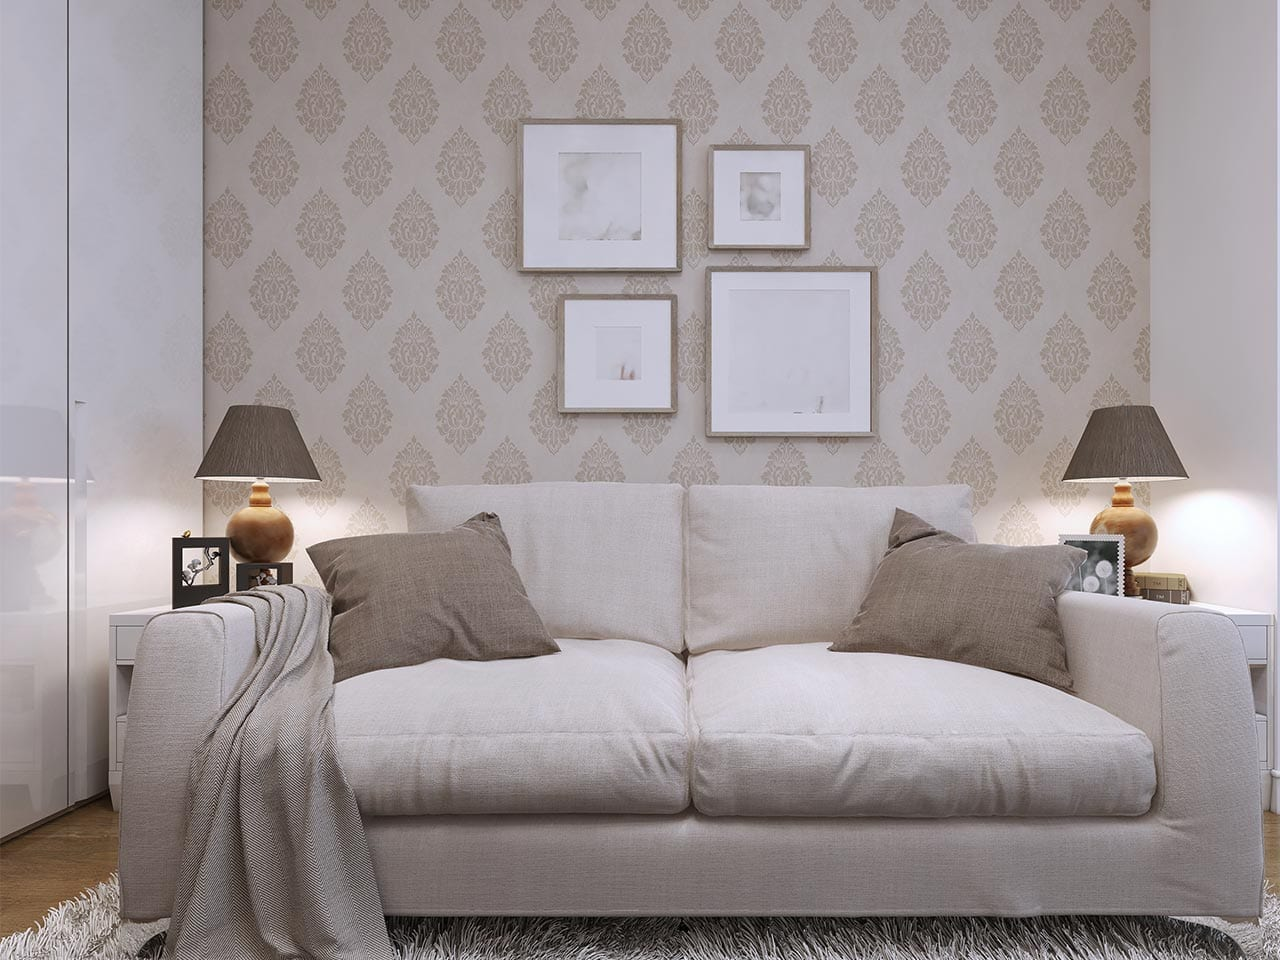 Wallpaper & Wall Coverings - Helm Paint & Decorating